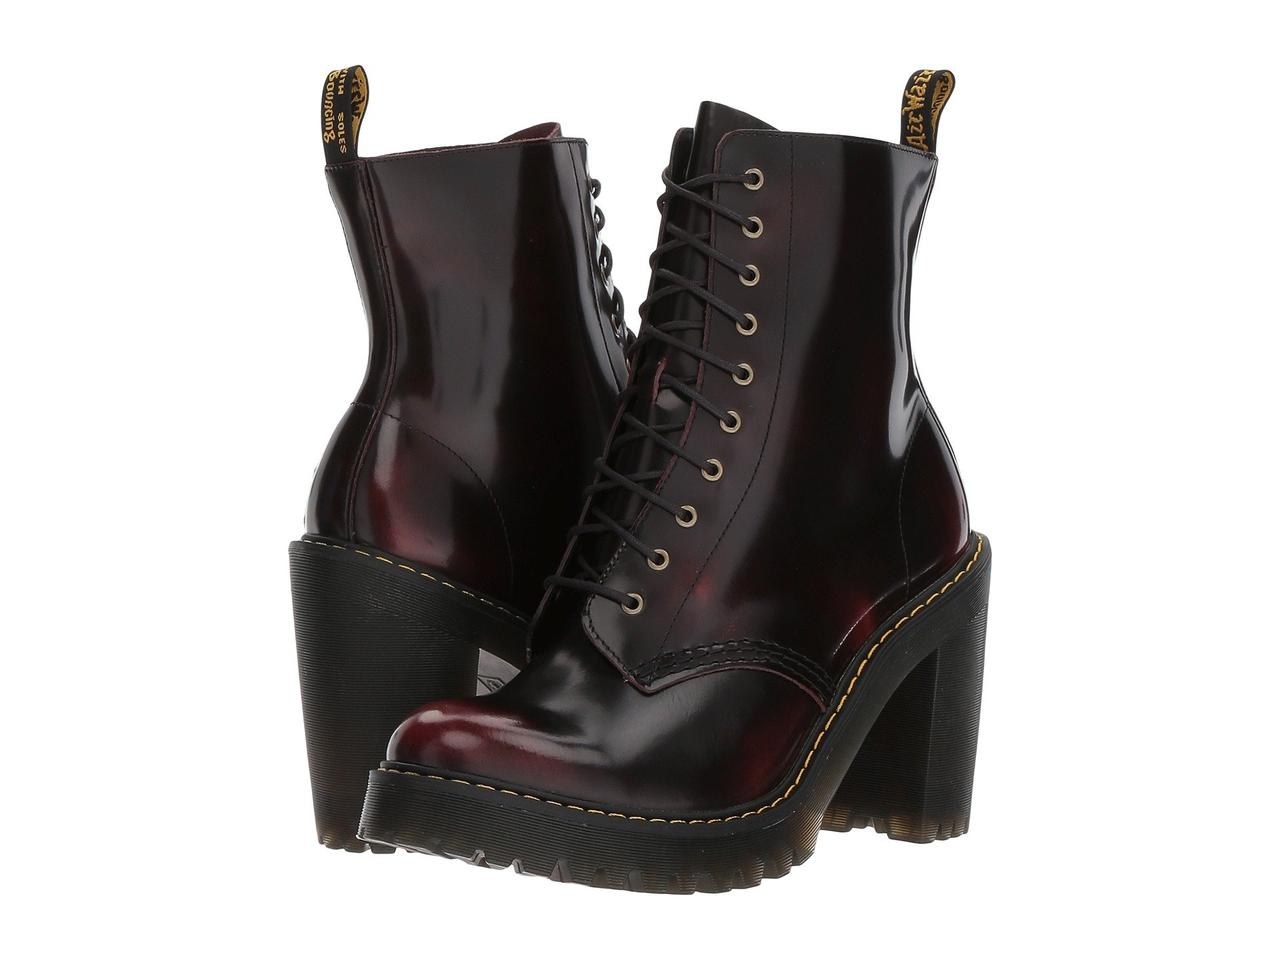 Ботинки/Сапоги (Оригинал) Dr. Martens Kendra 10-Eye Boot Cherry Red/Arcadia